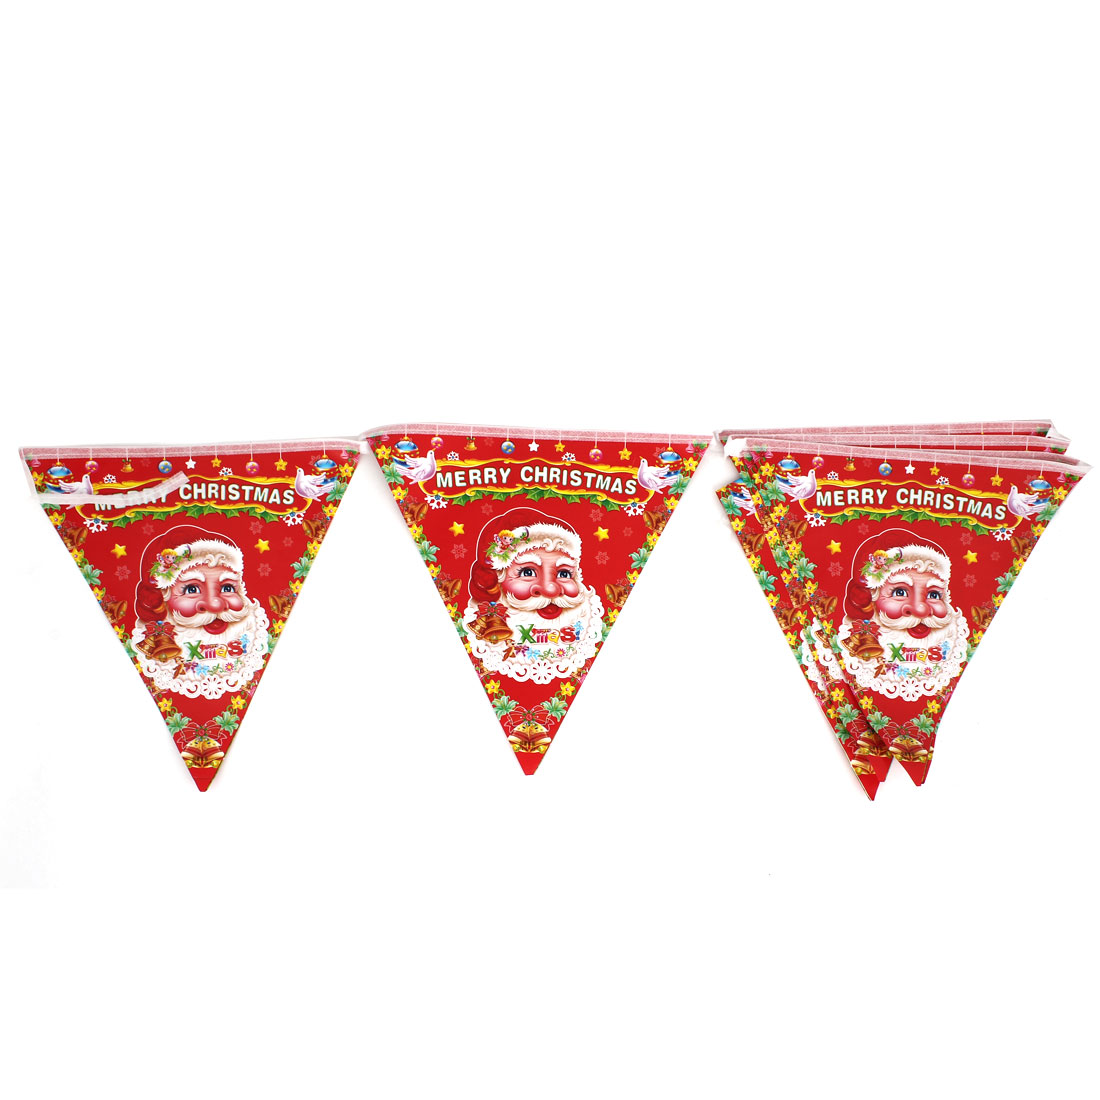 Merry Christmas Santa Claus Print 8 in 1 Triangle Flag Hanging Decor Red White Gold Tone